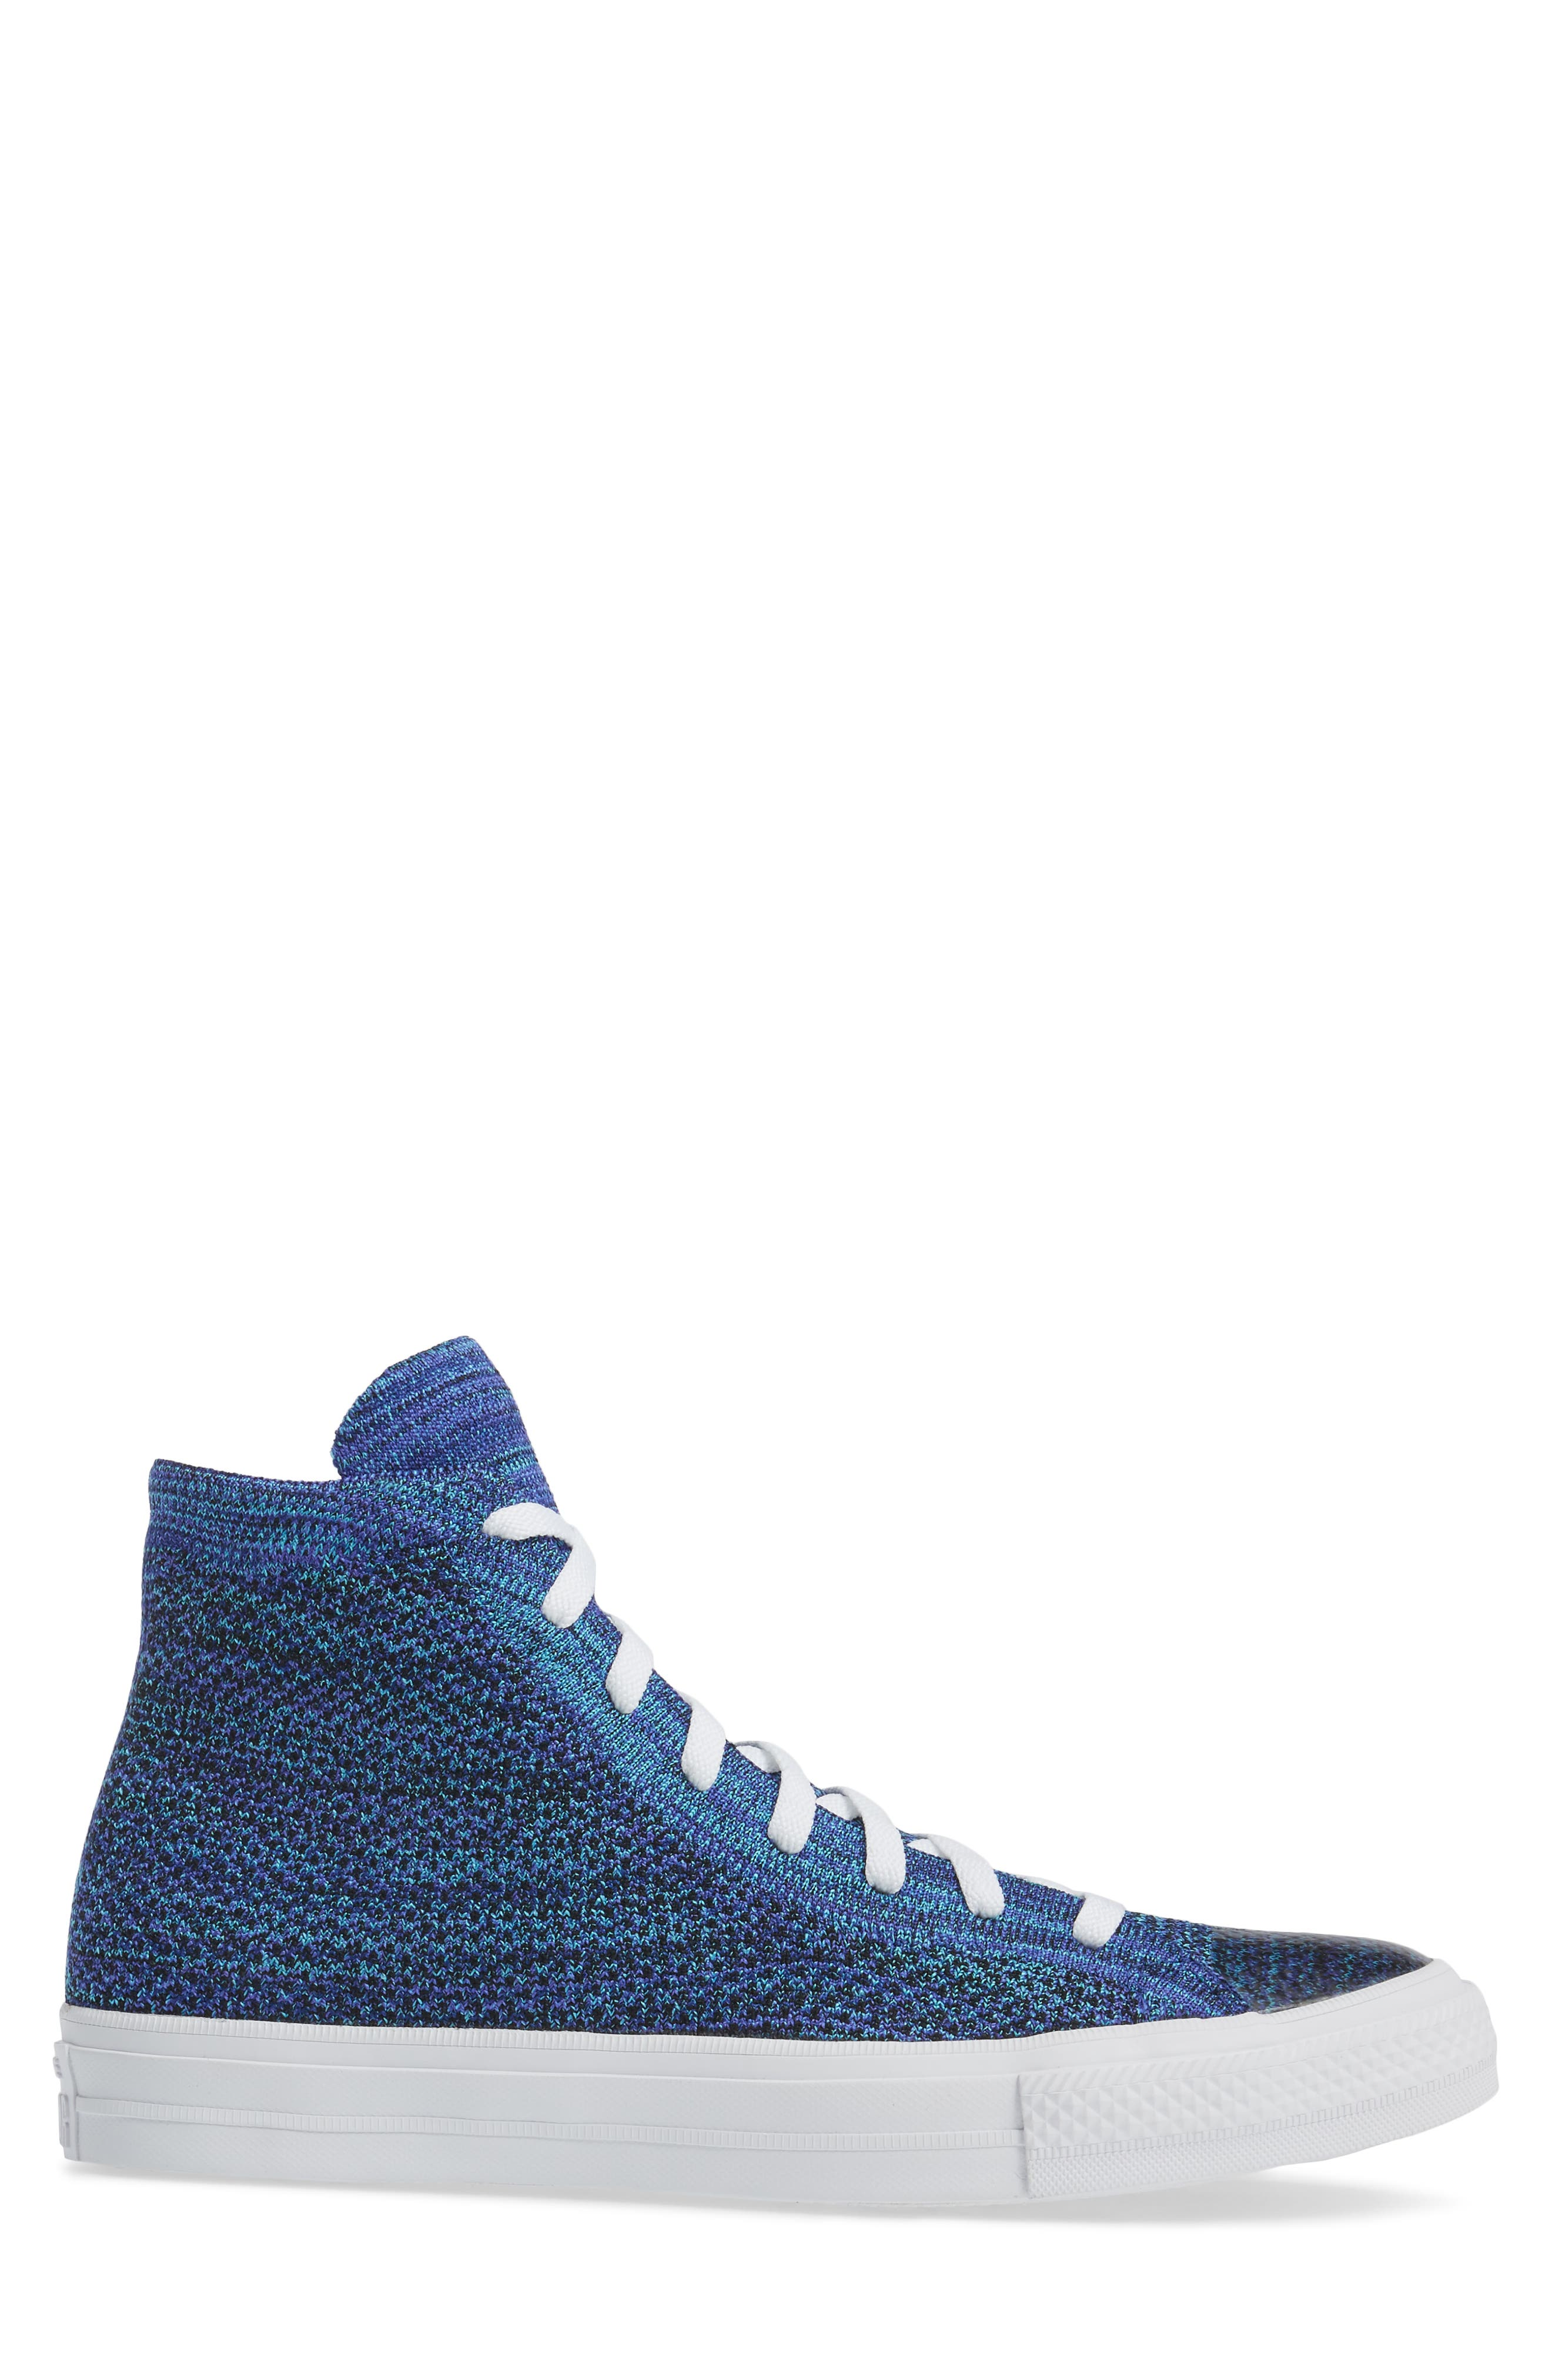 Chuck Taylor<sup>®</sup> All Star<sup>®</sup> Flyknit Hi Sneaker,                             Alternate thumbnail 18, color,